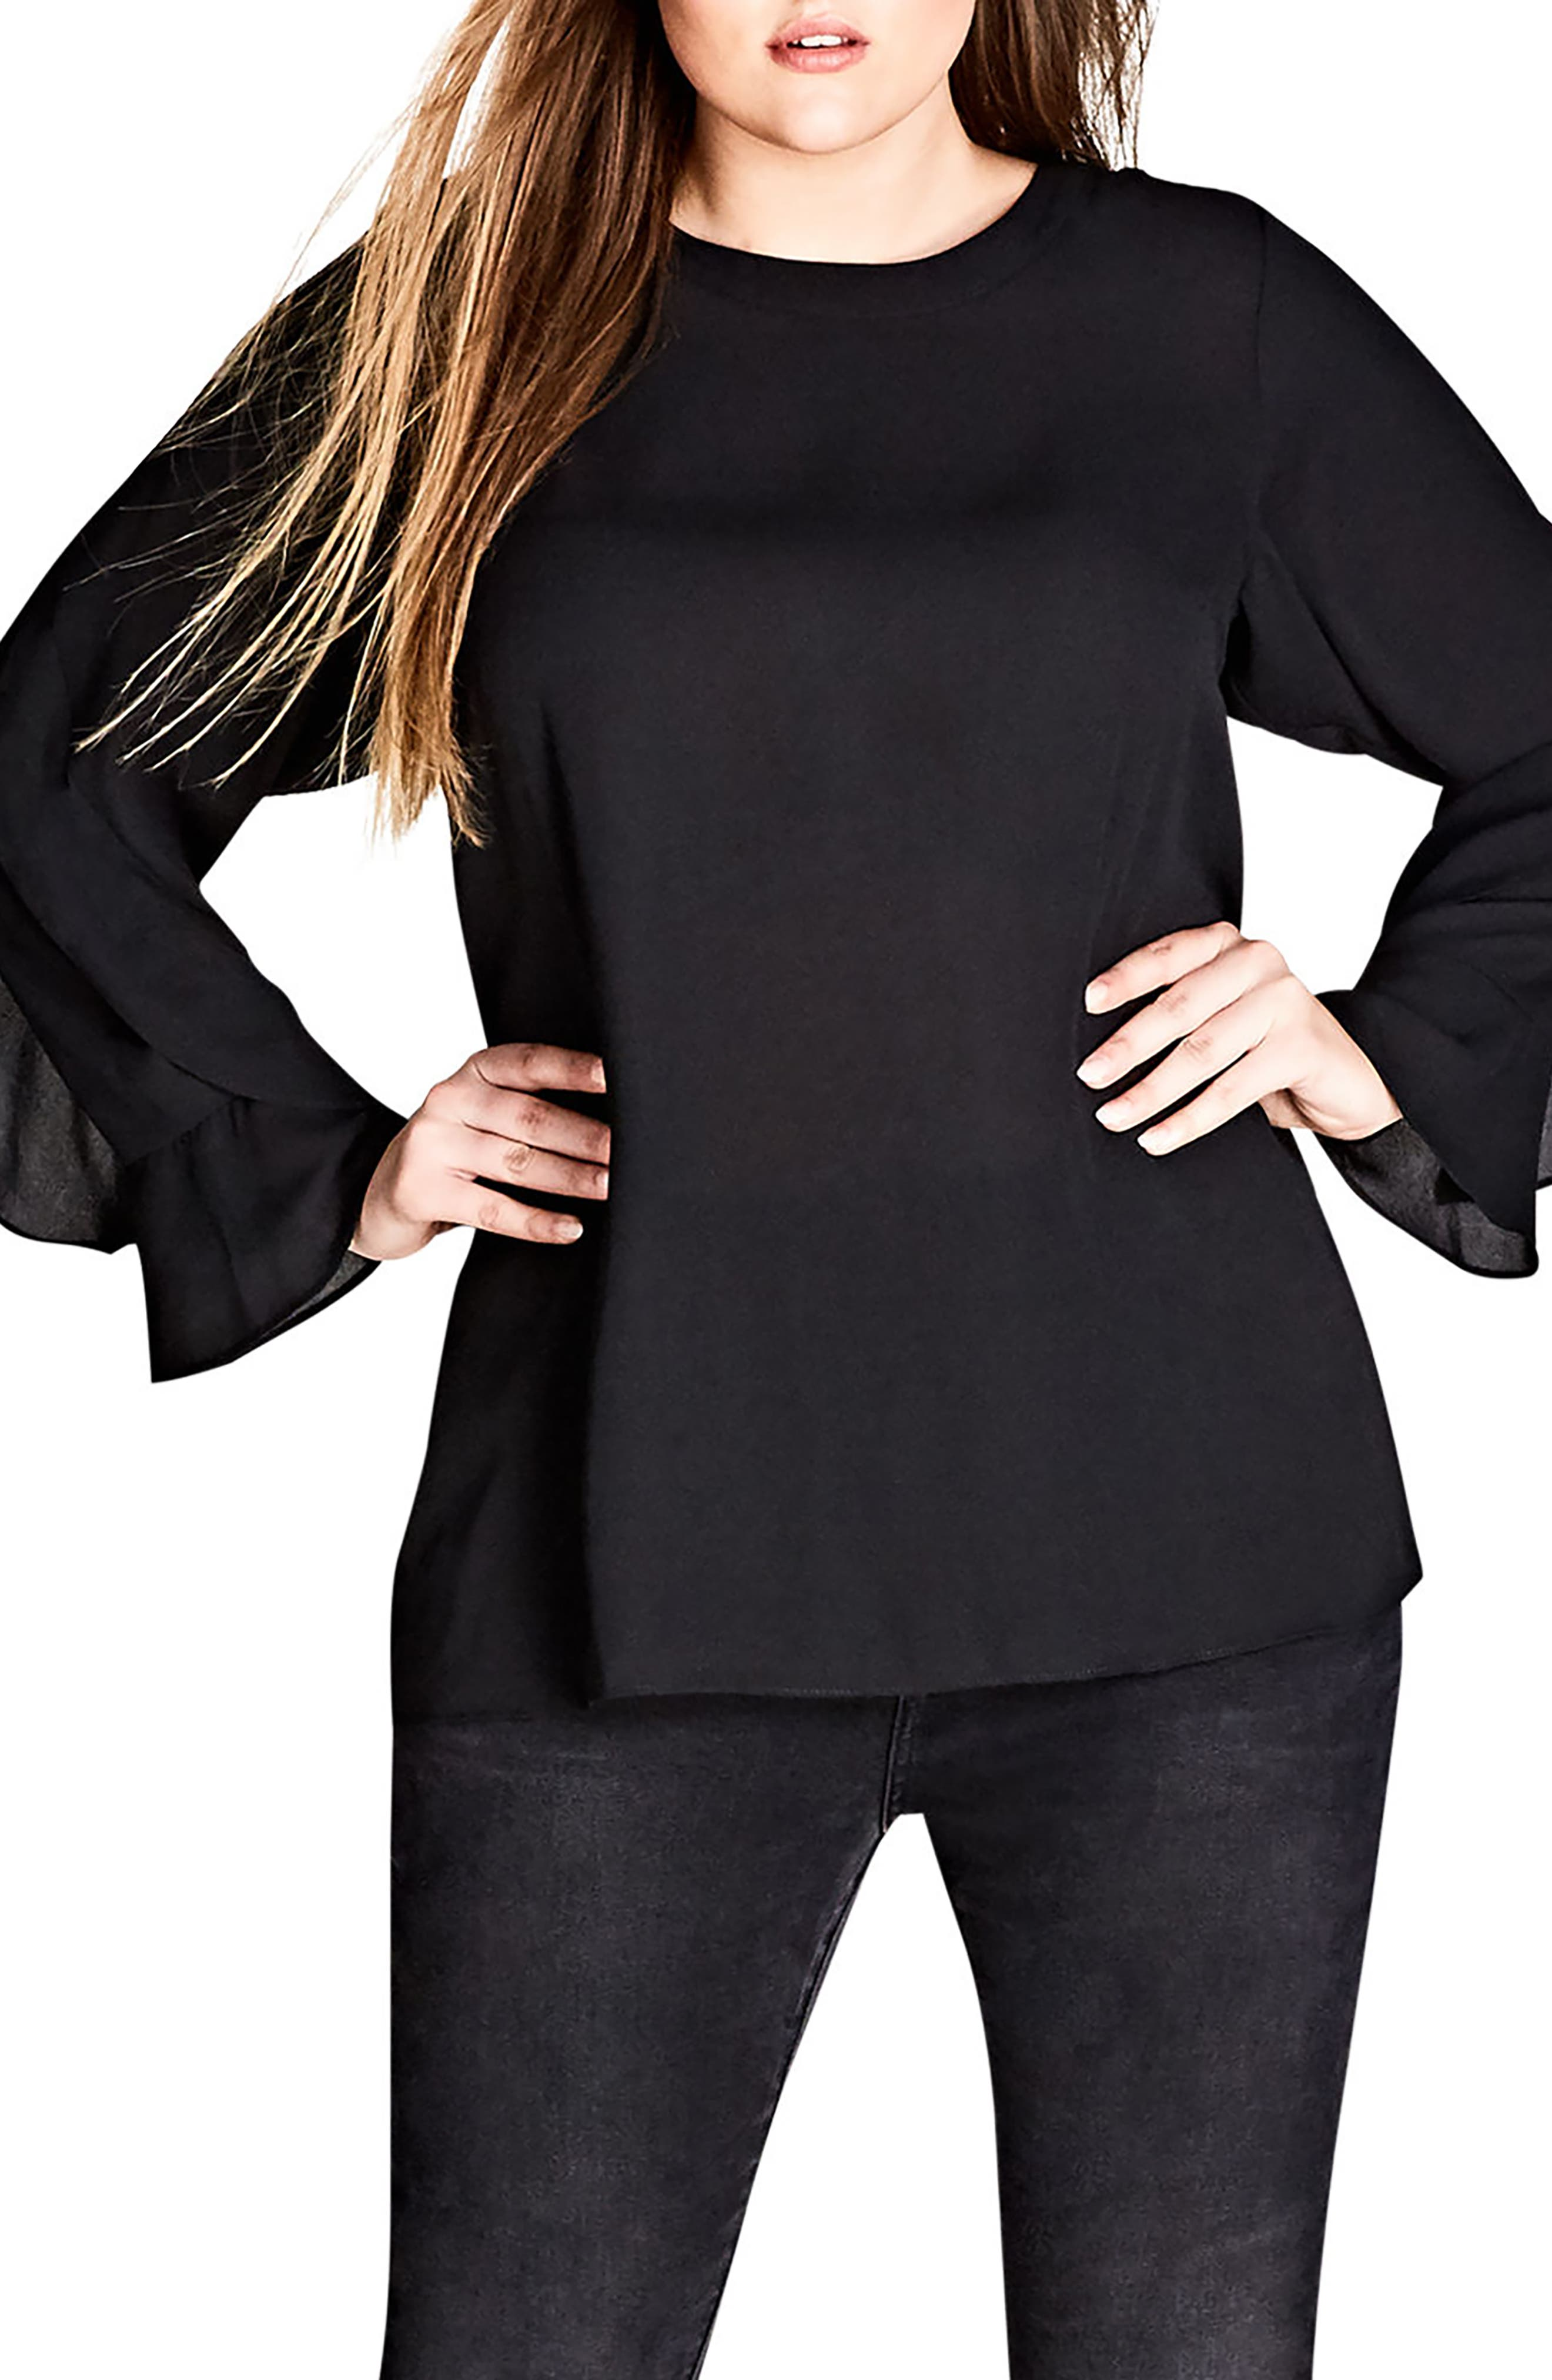 Main Image - City Chic Frill Me Layered Sleeve Woven Top (Plus Size)